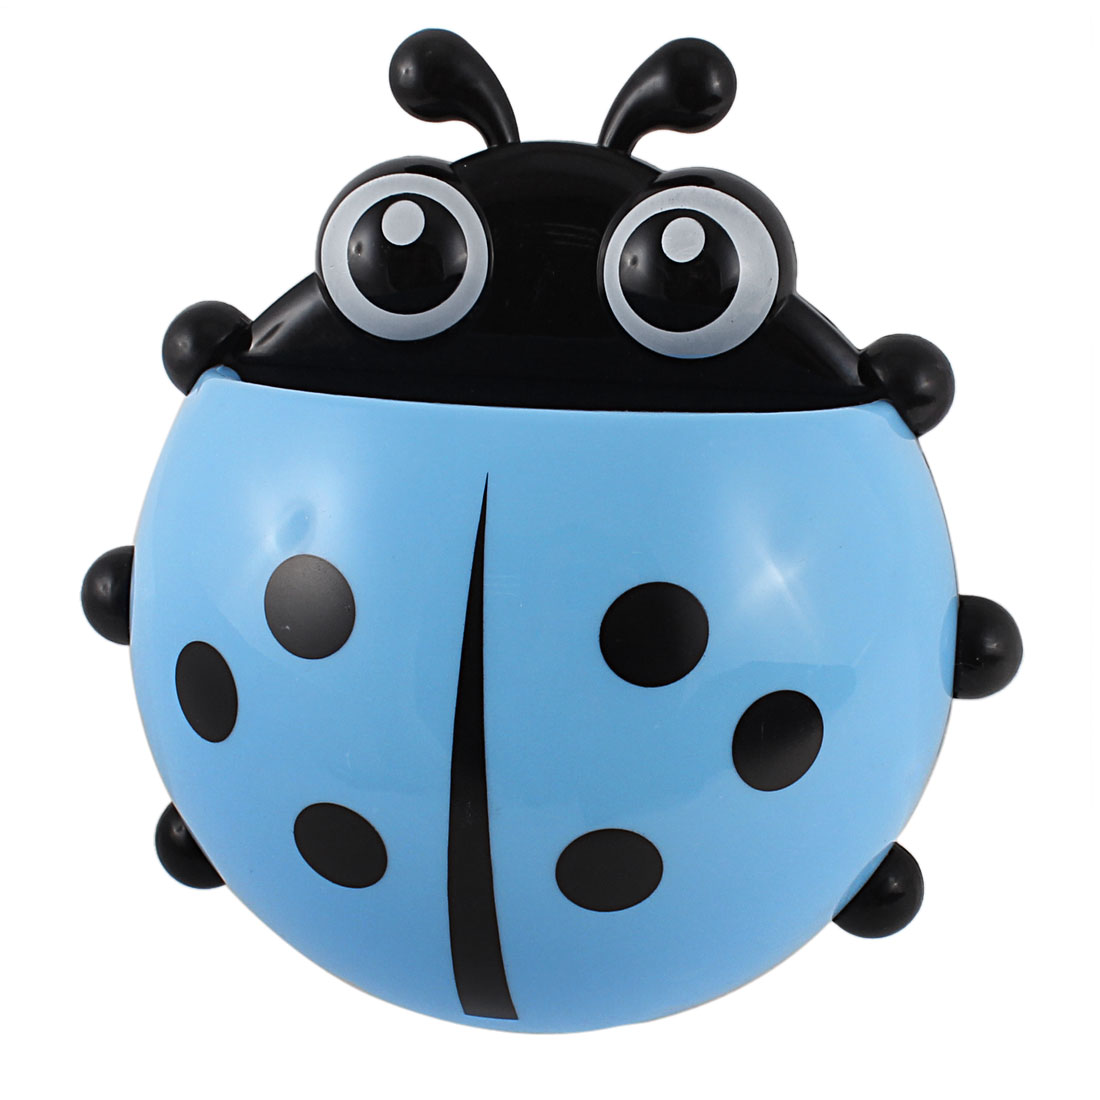 Bathroom Suction Cup Ladybird Design Toothpaste Toothbrush Rack Holder Blue